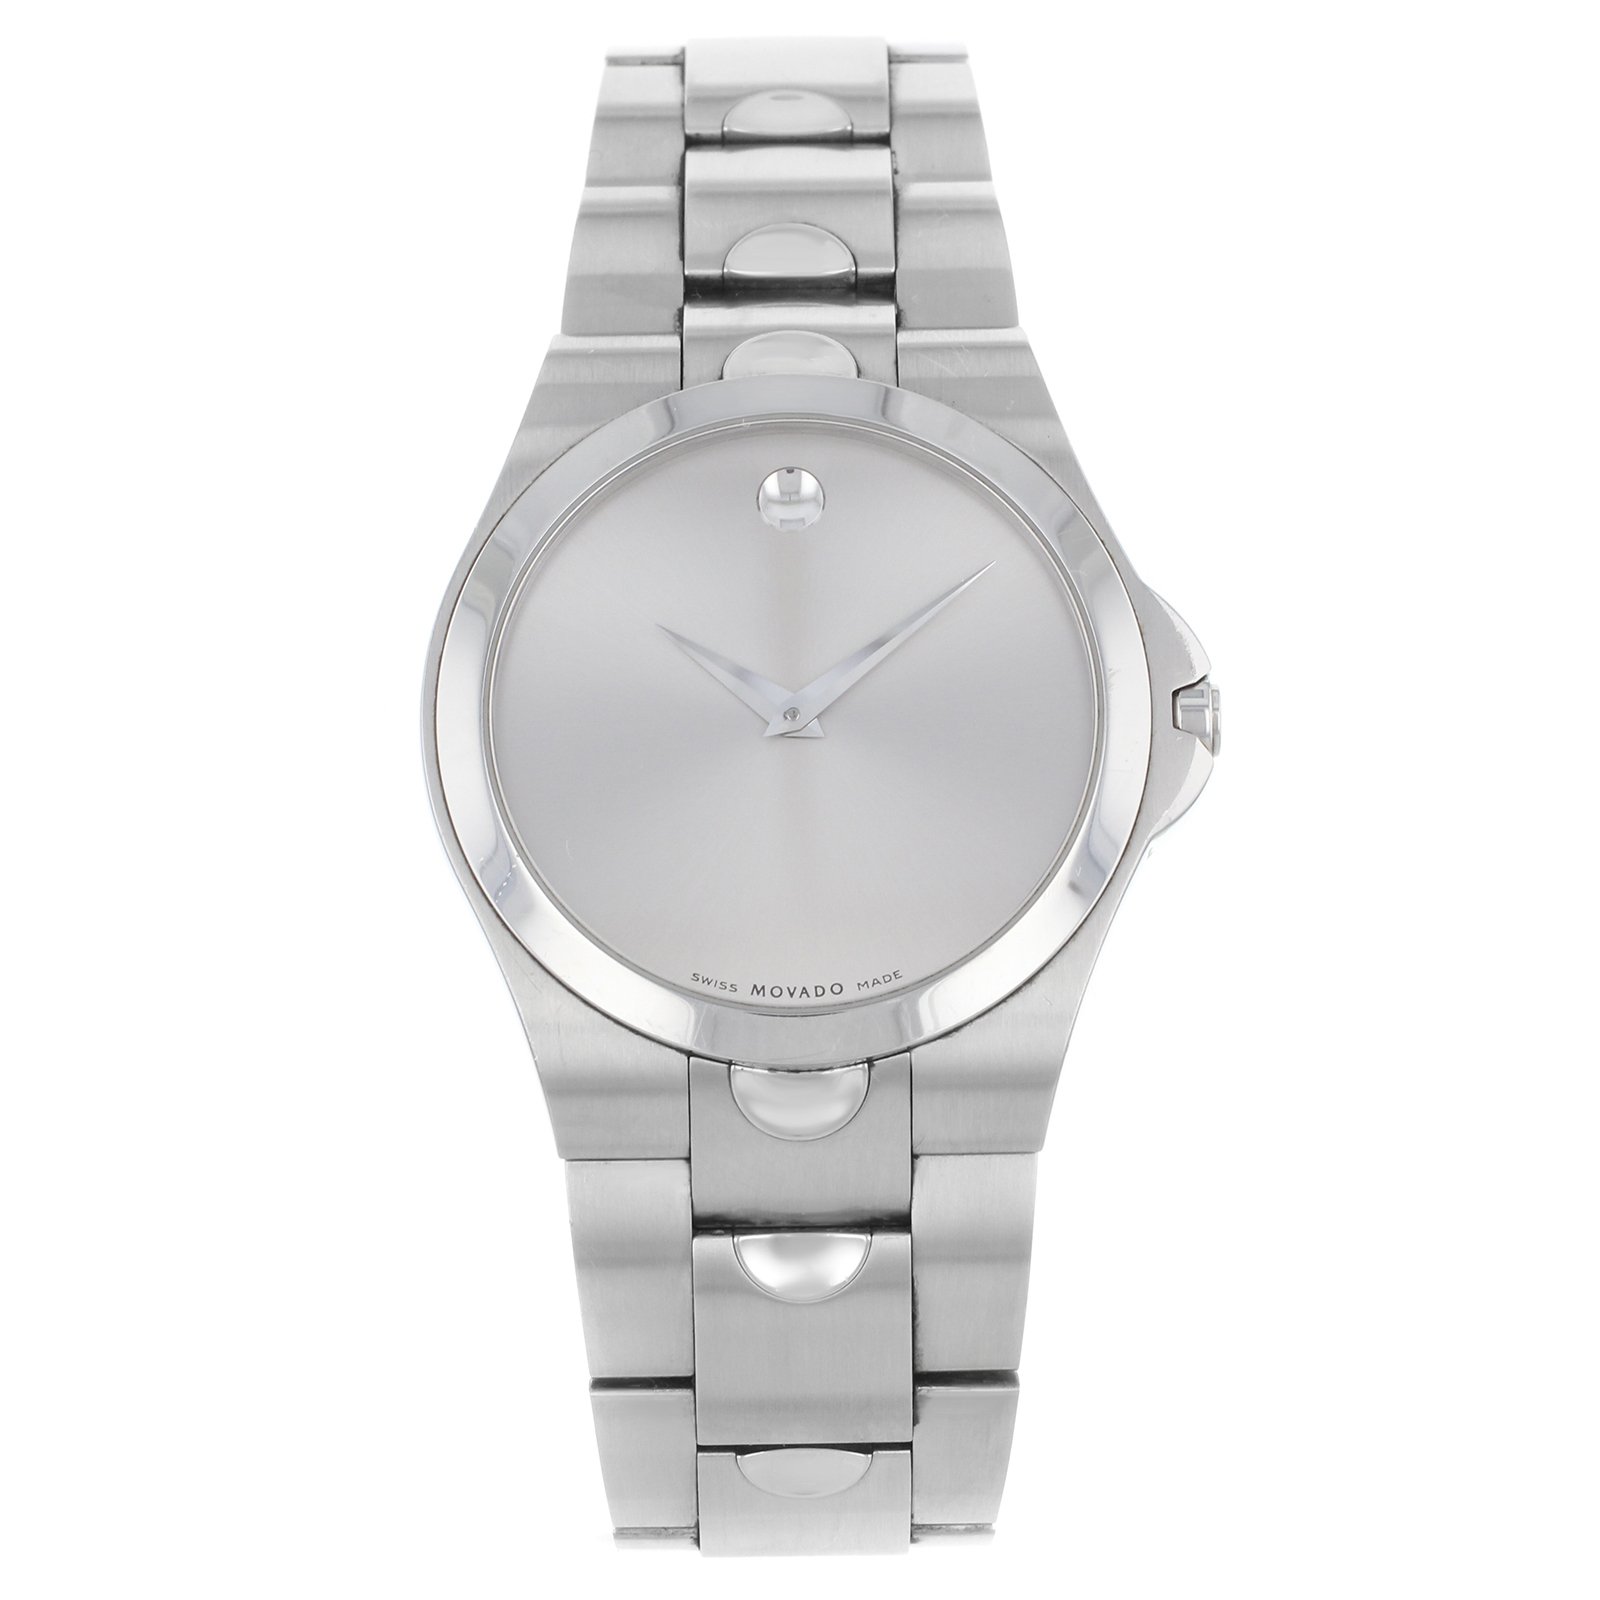 movado watches mens jacobtime luno stainless watch steel